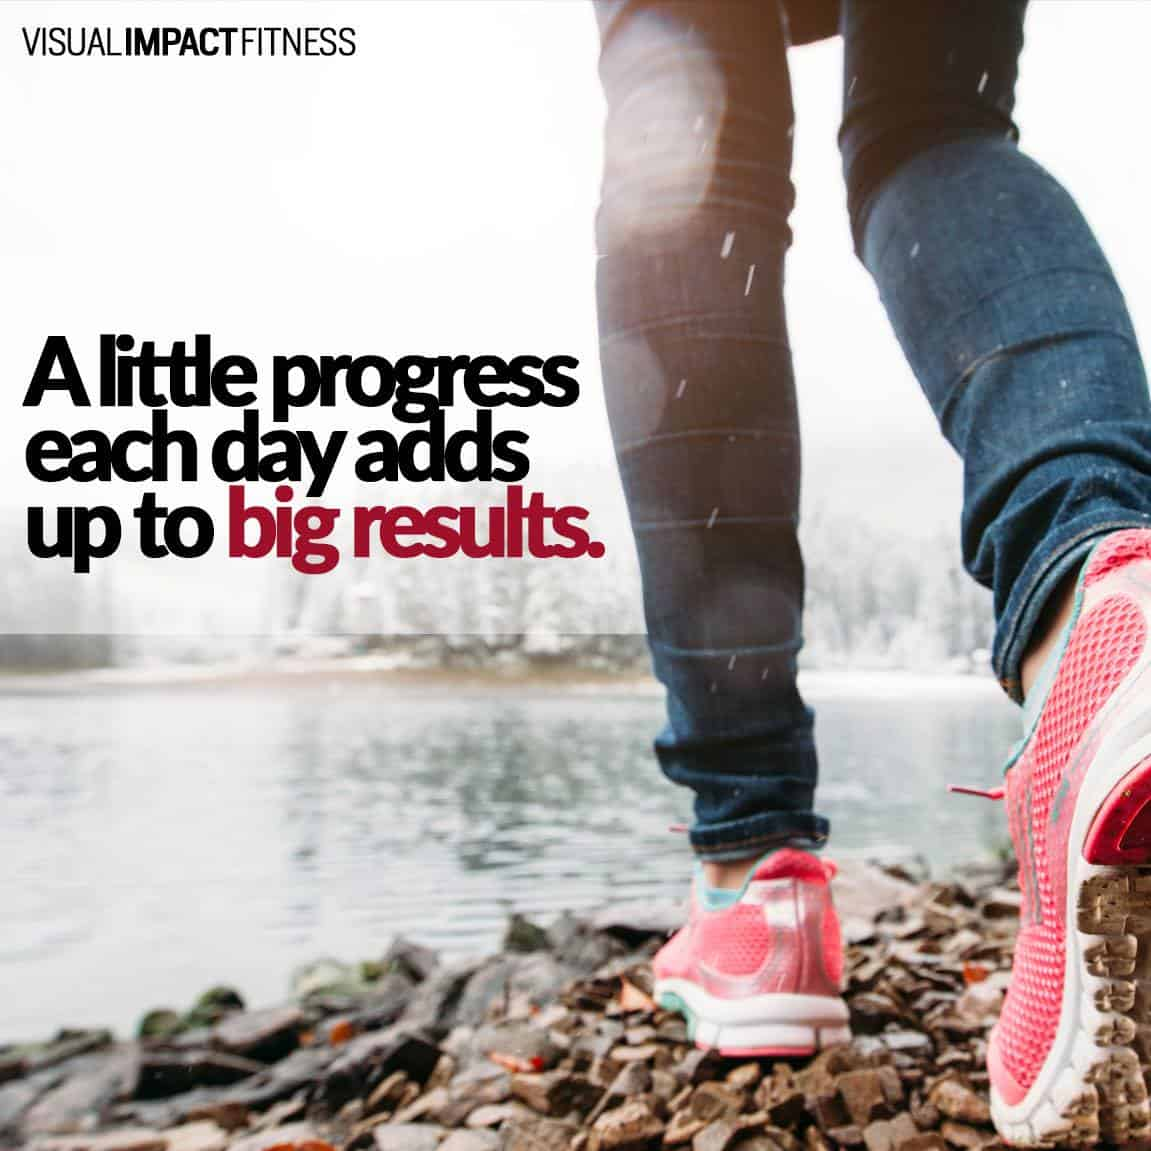 A little progress each day adds up to big results.